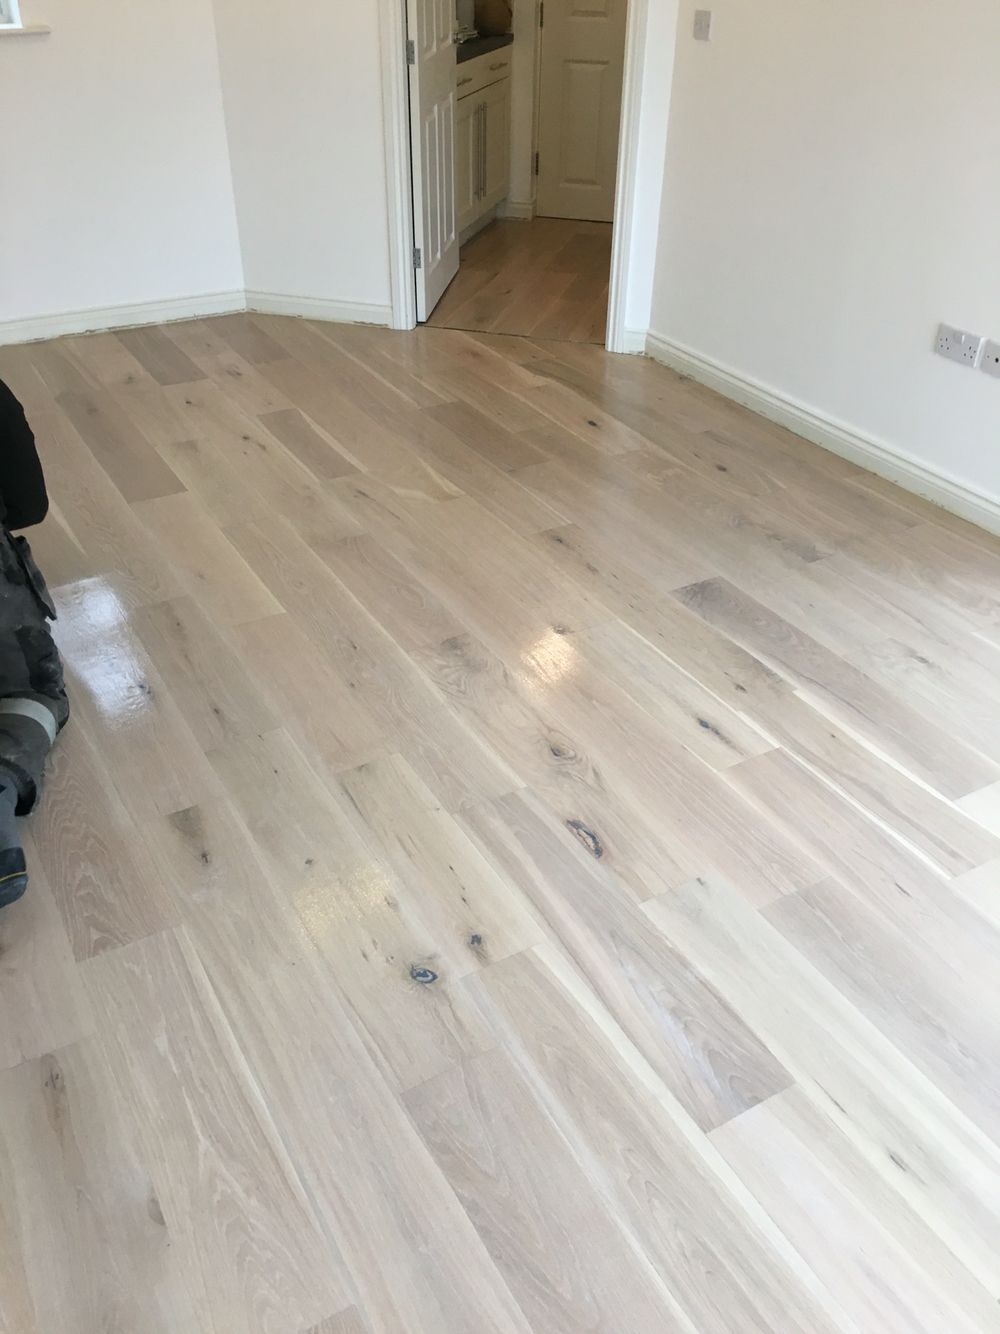 Oak flooring we have restored and finished using white White washed wood flooring